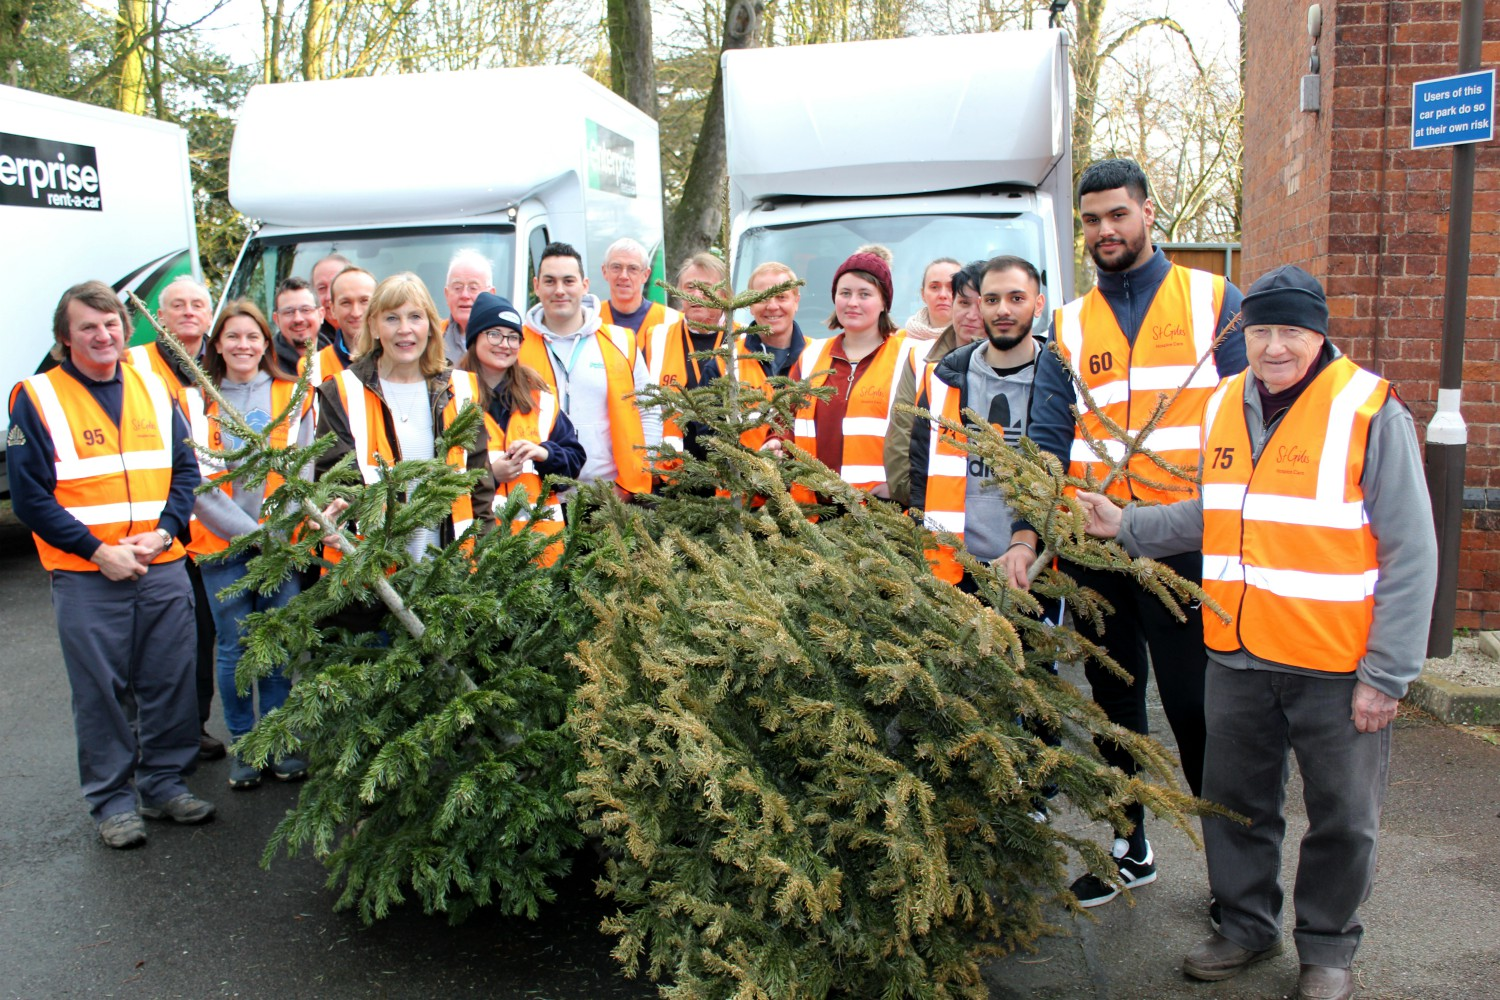 St Giles Hospice celebrates amazing Treecycle success